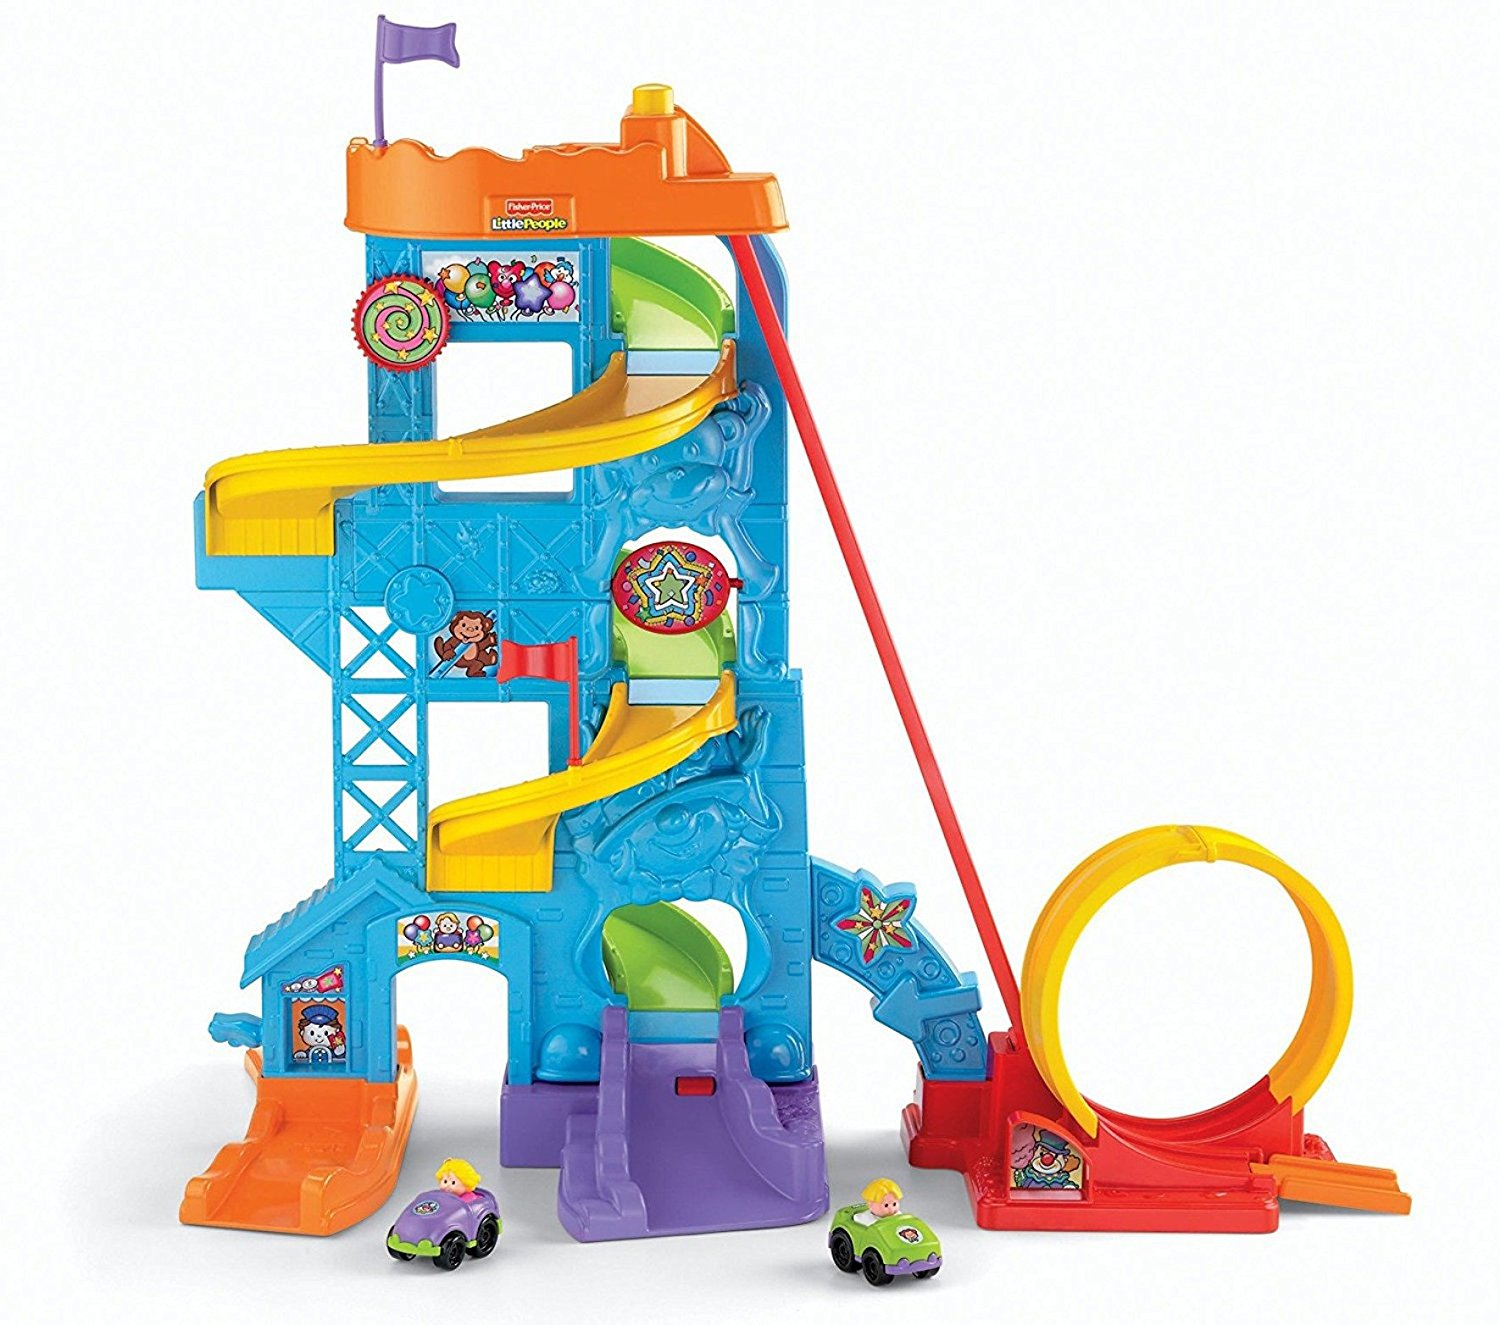 Fisher-Price Loops 'n Swoops Amusement Park Playset – Available in 2 Package Options